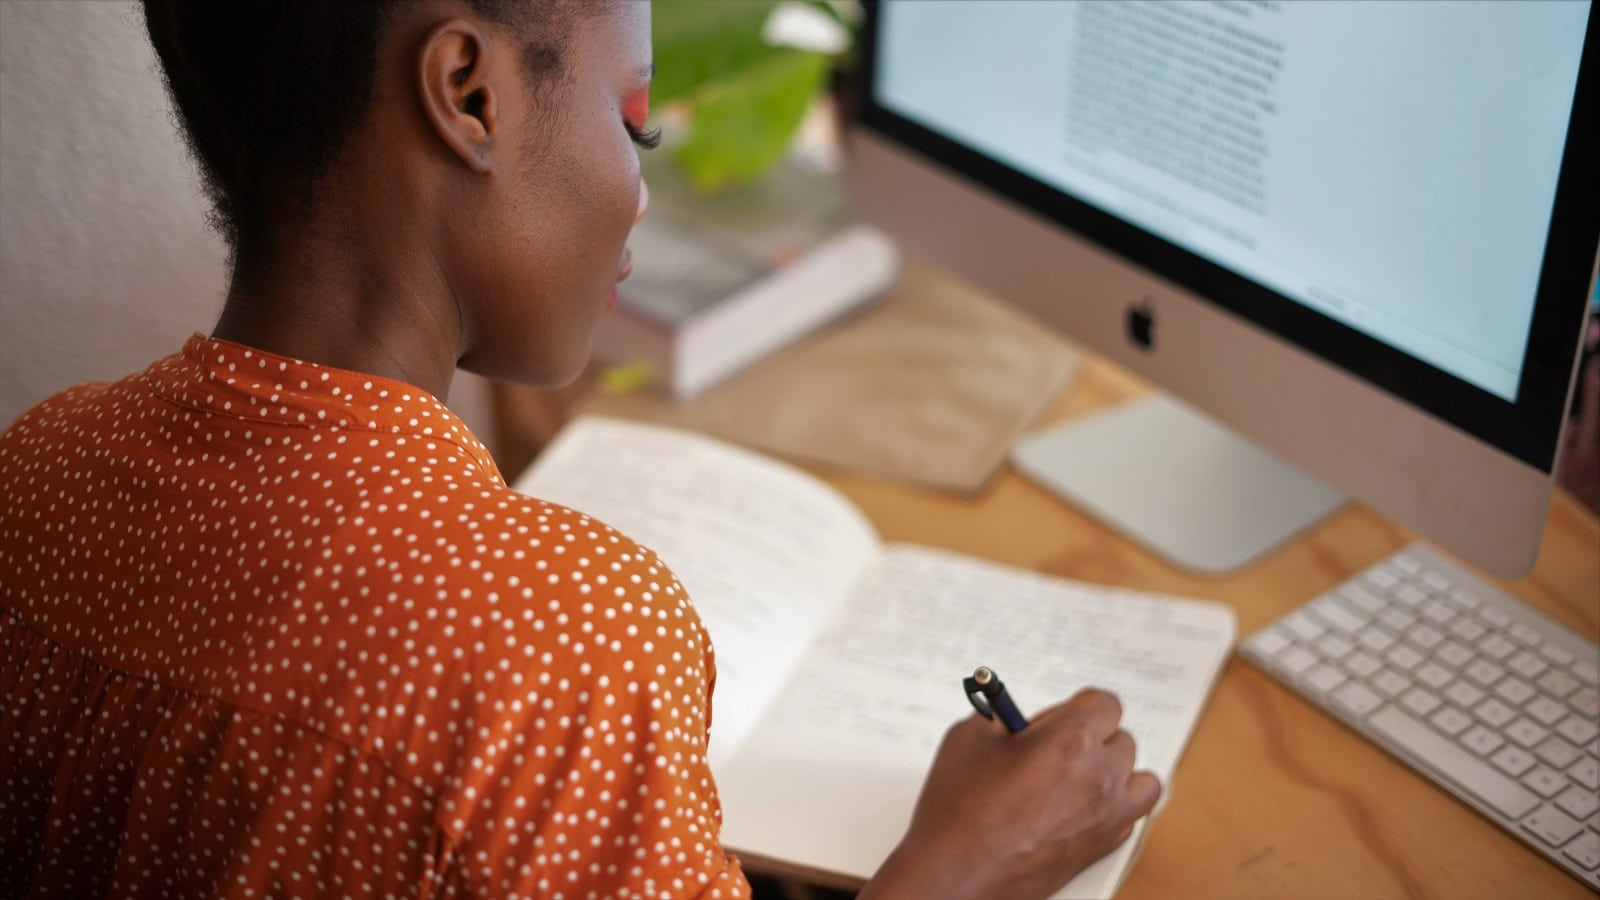 Expert Tips for Learning and Teaching from Home